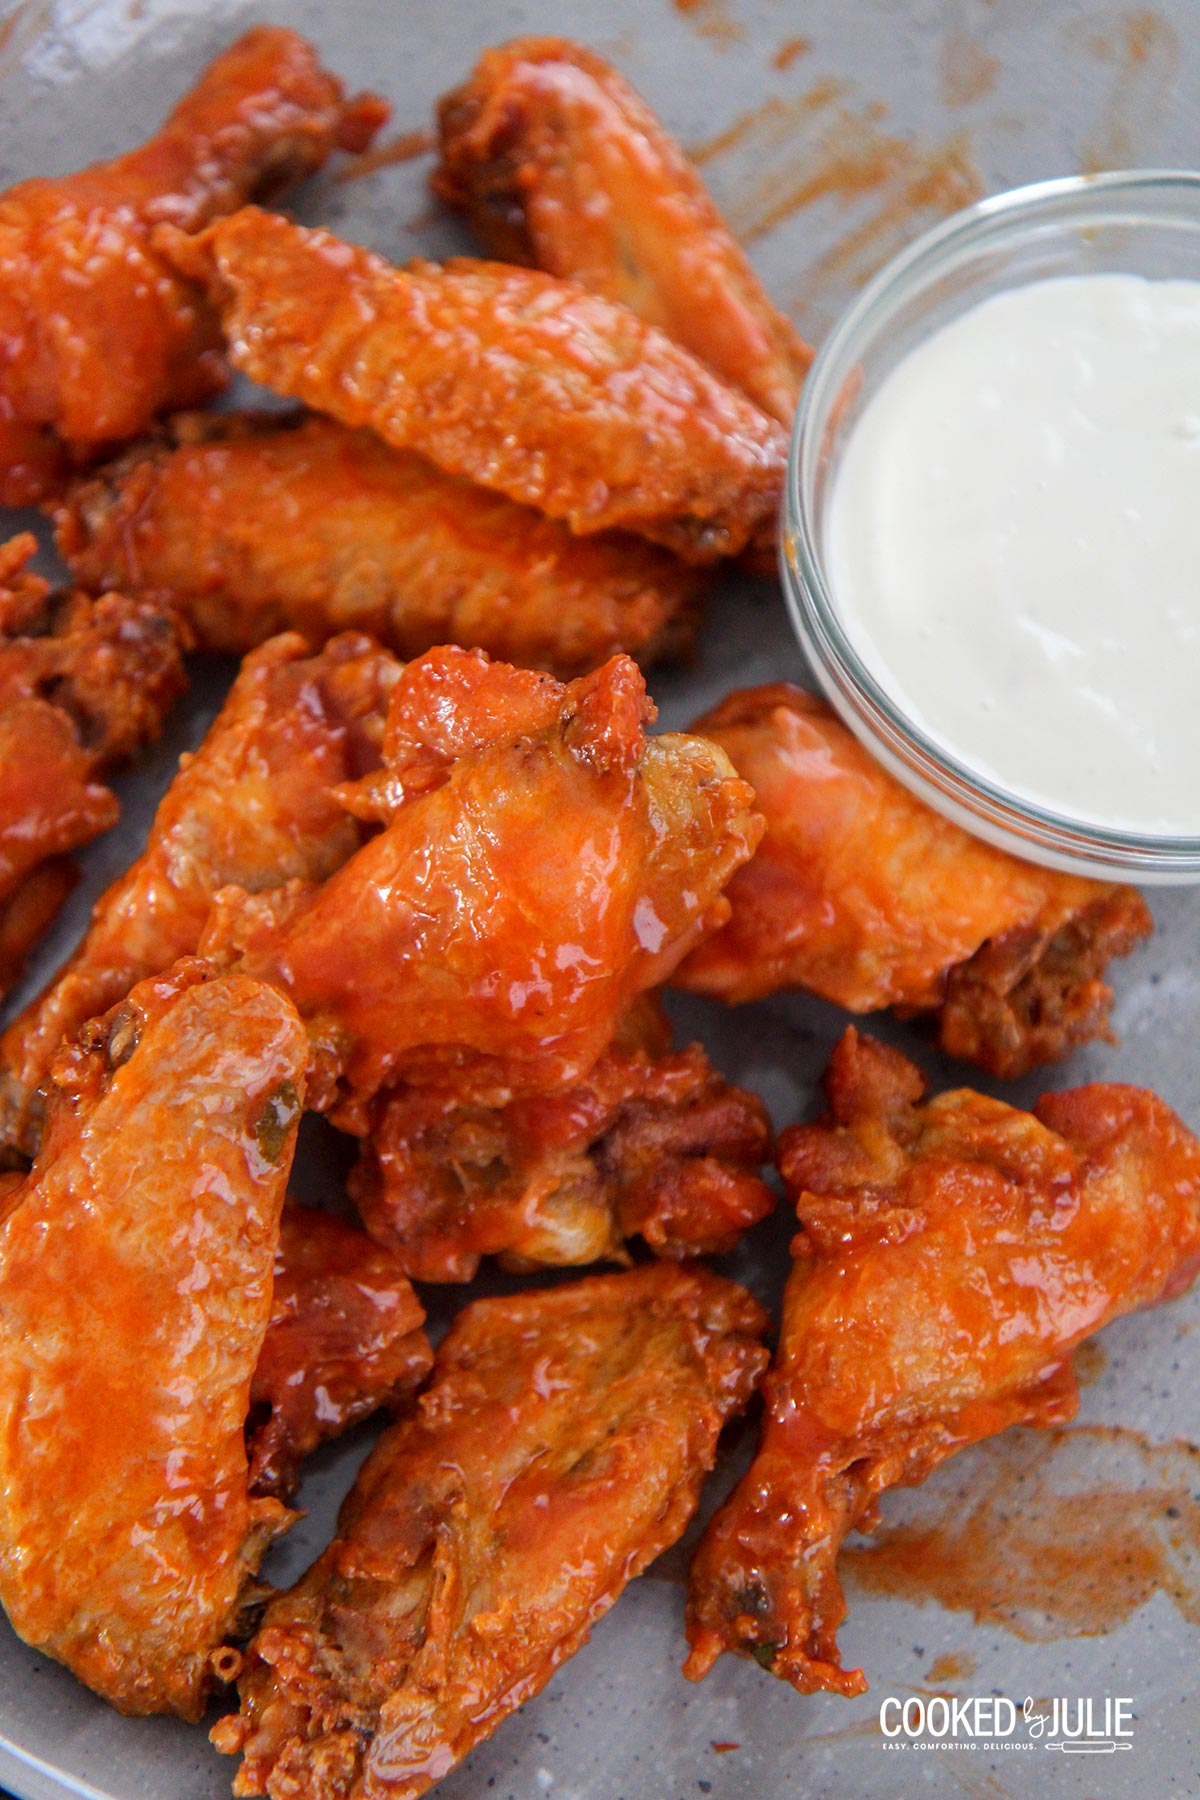 baked buffalo wings on a gray plate with a side of bleu cheese